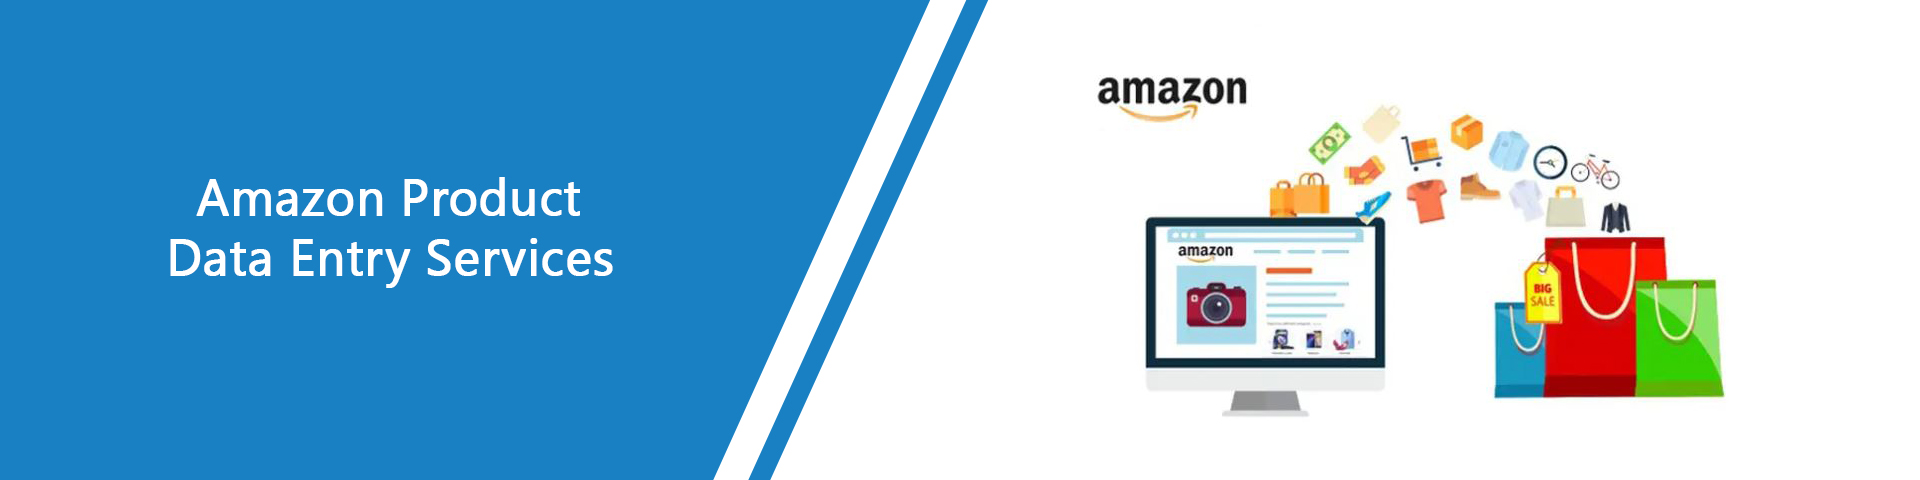 Amazon Product Data Entry Services